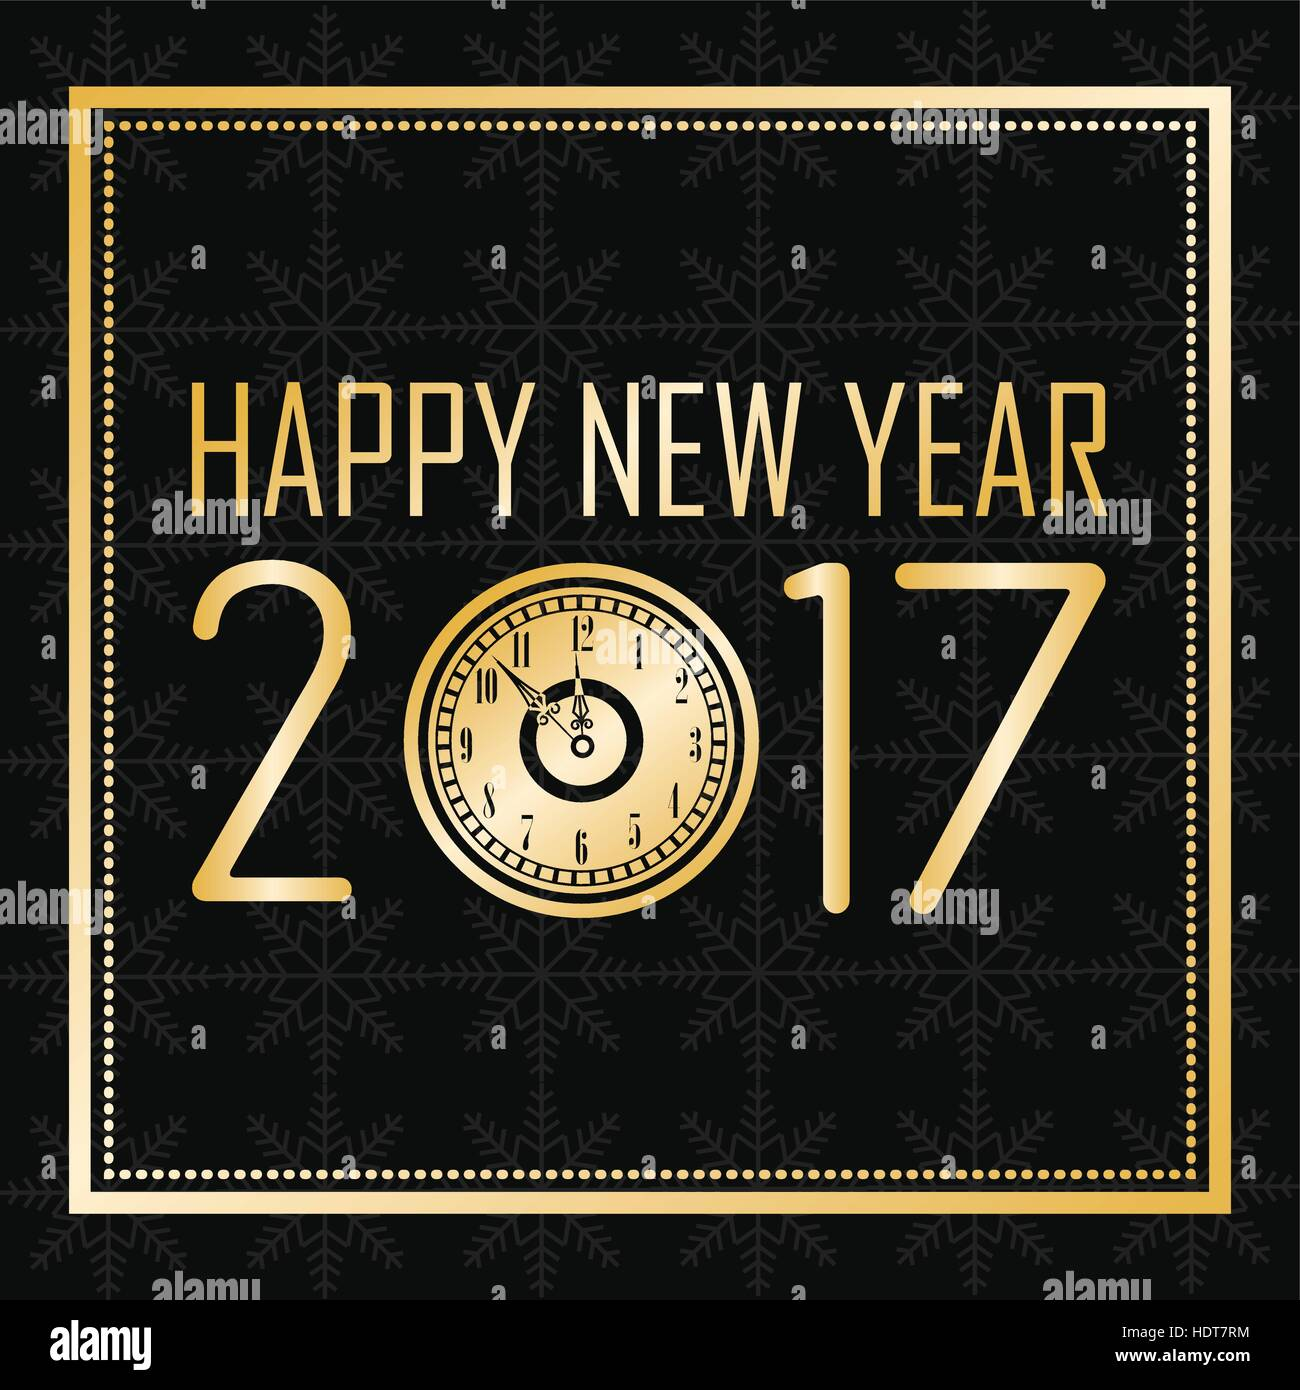 Happy New Year 2017 Greeting Card Gold Clock Frame